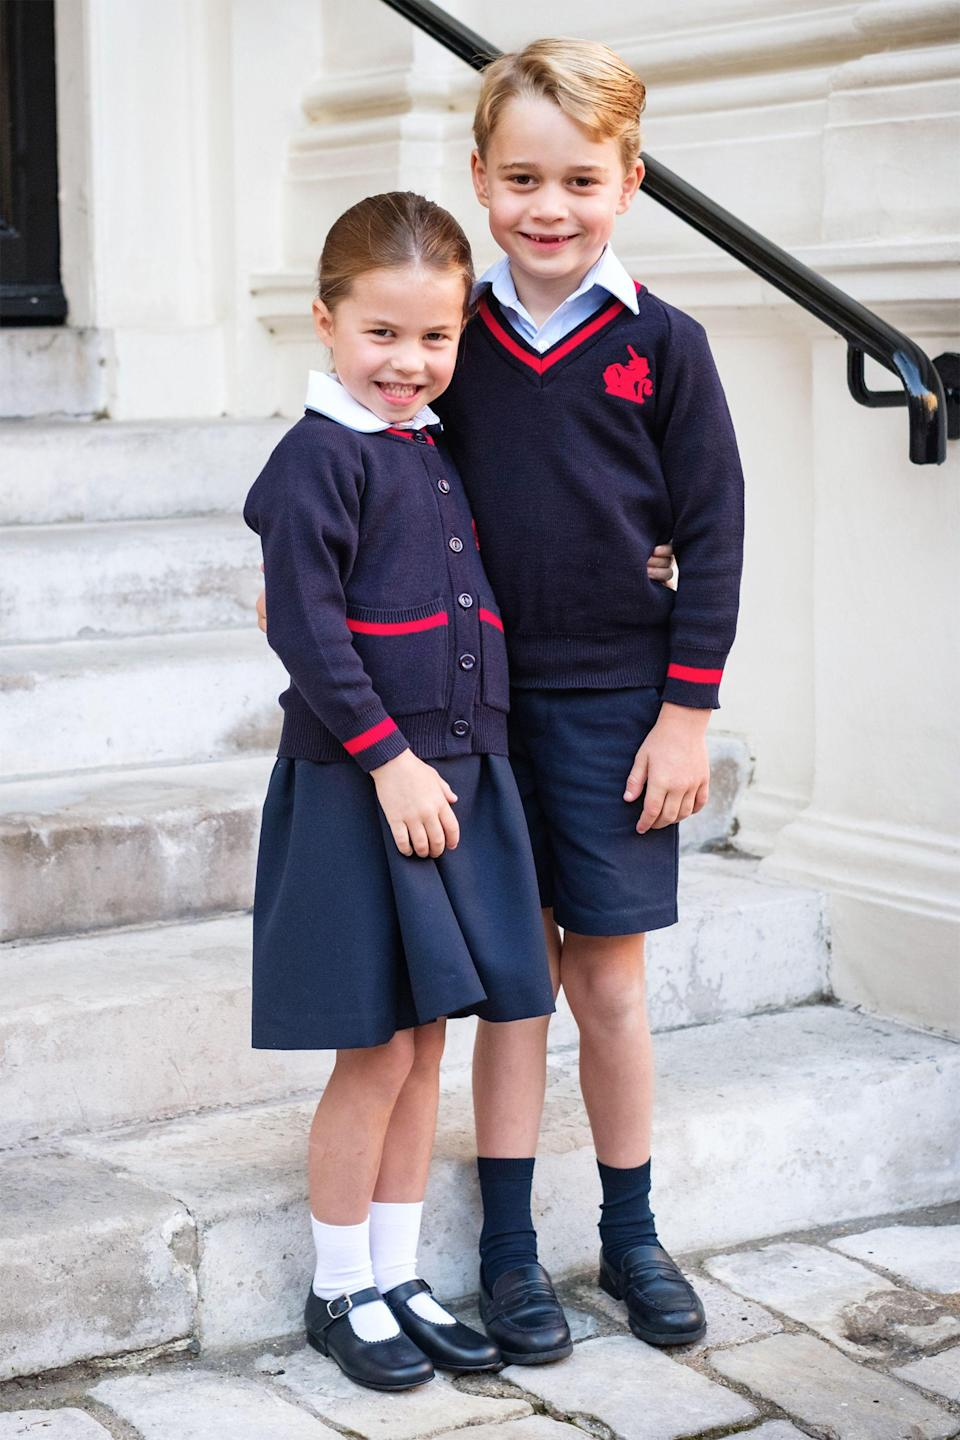 "<p>Prince George and Princess Charlotte are officially back at school! Today marked Charlotte's <a href=""https://www.harpersbazaar.com/celebrity/latest/a28917058/prince-george-princess-charlotte-first-day-school/"" rel=""nofollow noopener"" target=""_blank"" data-ylk=""slk:first time"" class=""link rapid-noclick-resp"">first time</a> at Thomas's Battersea in London, where her brother has been attending since 2017. Joined by their parents, the Duke and Duchess of Cambridge, the royal siblings made a charming arrival in their matching uniforms. From their iconic <a href=""https://www.harpersbazaar.com/celebrity/latest/a28922146/princess-charlotte-first-day-of-school-funny-face-photos/"" rel=""nofollow noopener"" target=""_blank"" data-ylk=""slk:silly faces"" class=""link rapid-noclick-resp"">silly faces</a>, to Kate Middleton giving <a href=""https://www.harpersbazaar.com/celebrity/latest/a28925140/kate-middleton-princess-charlotte-school-advice/"" rel=""nofollow noopener"" target=""_blank"" data-ylk=""slk:sweet advice"" class=""link rapid-noclick-resp"">sweet advice</a> to Charlotte, these two siblings are surely in for a fun school year. Click through to see the cutest photos from their first day. </p>"